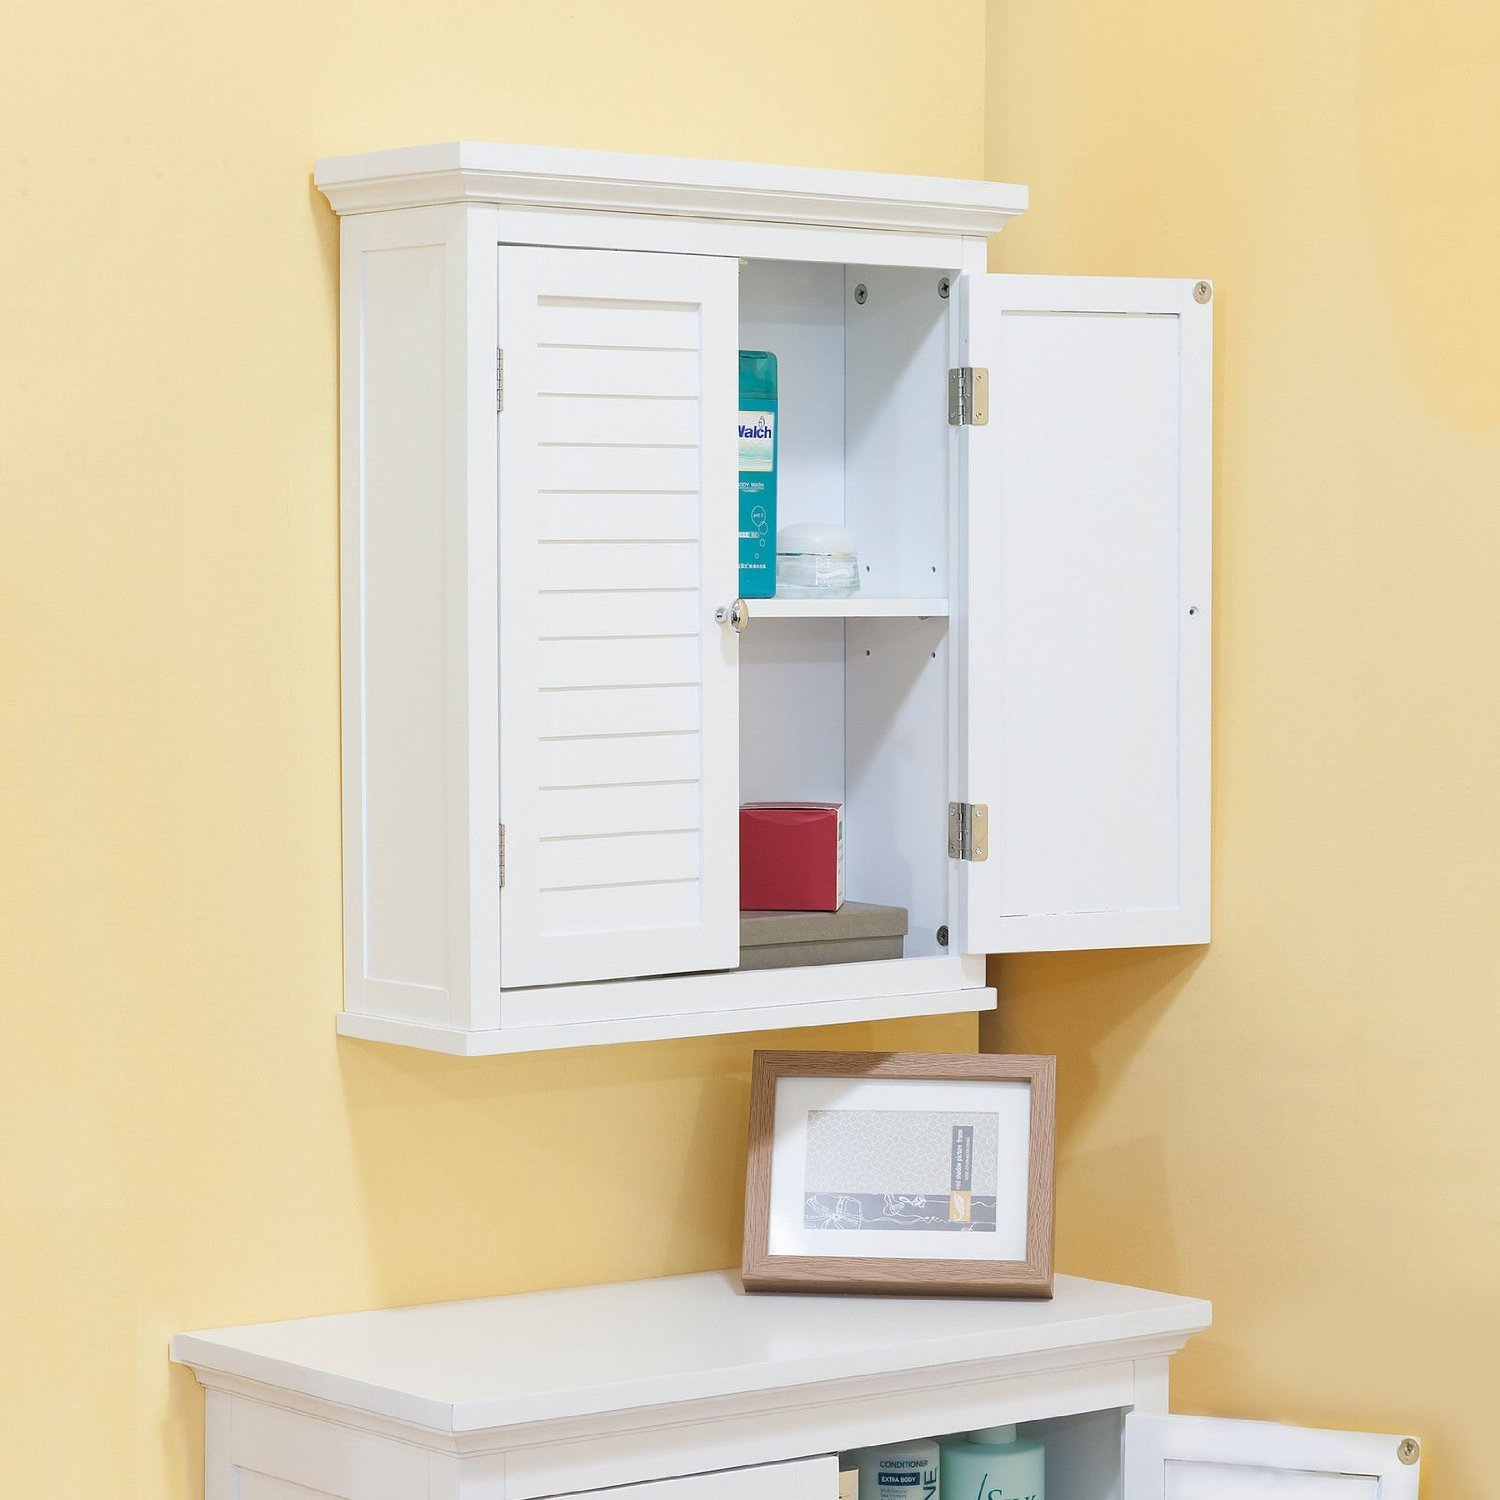 Bathroom Cabinet With Shutter Doors, White